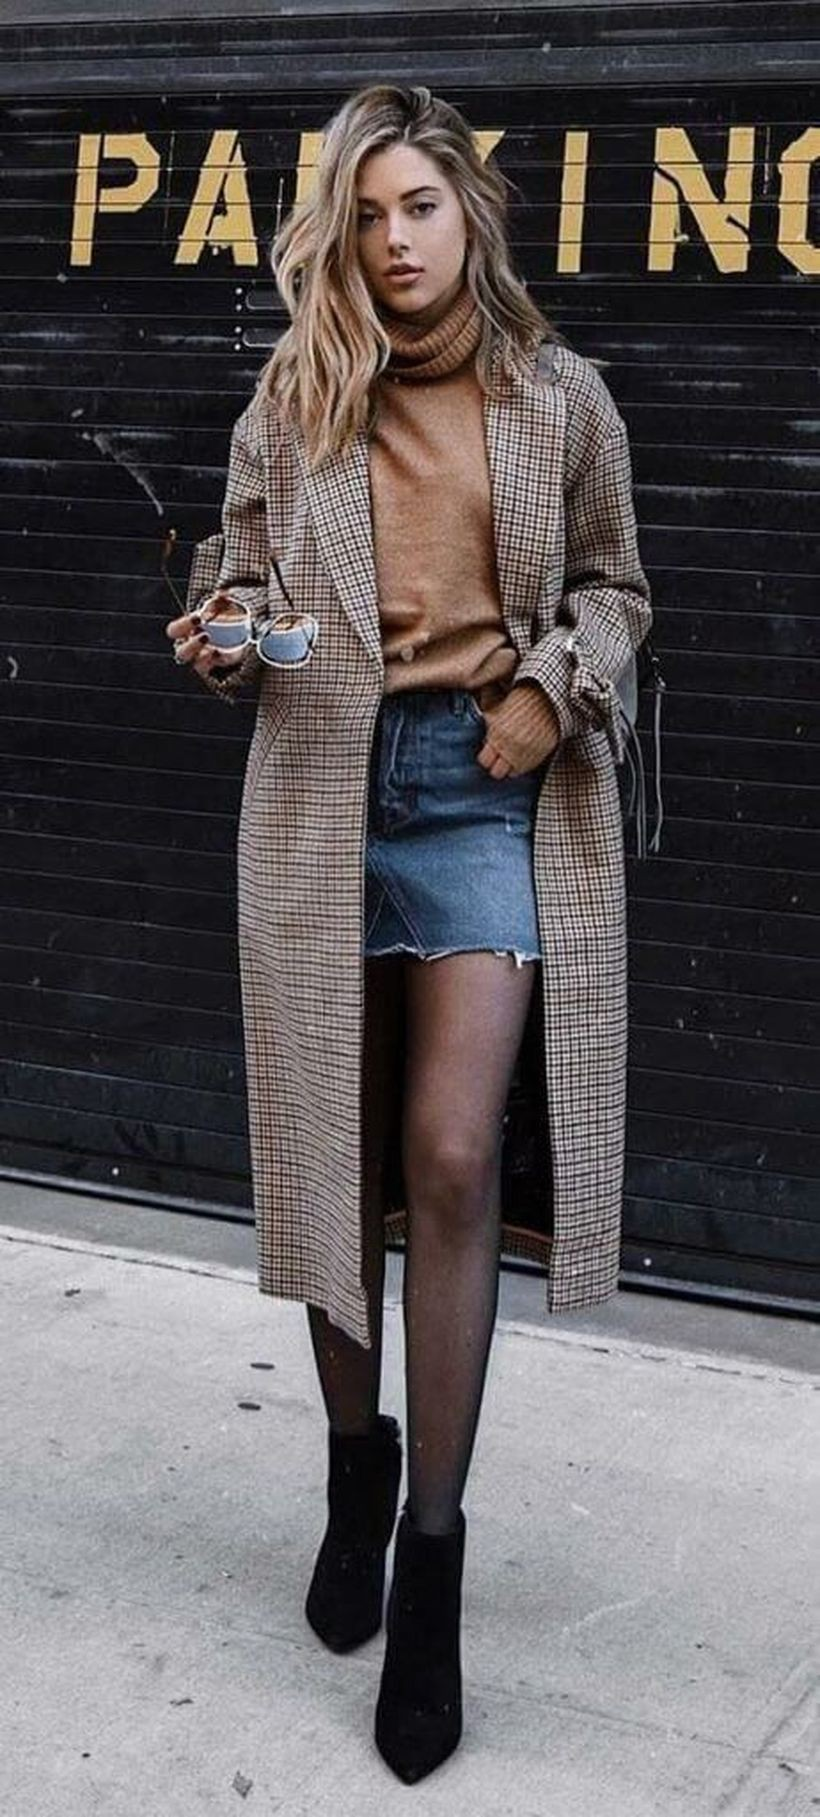 Just out of the world winter outfits damen 2019, Denim skirt